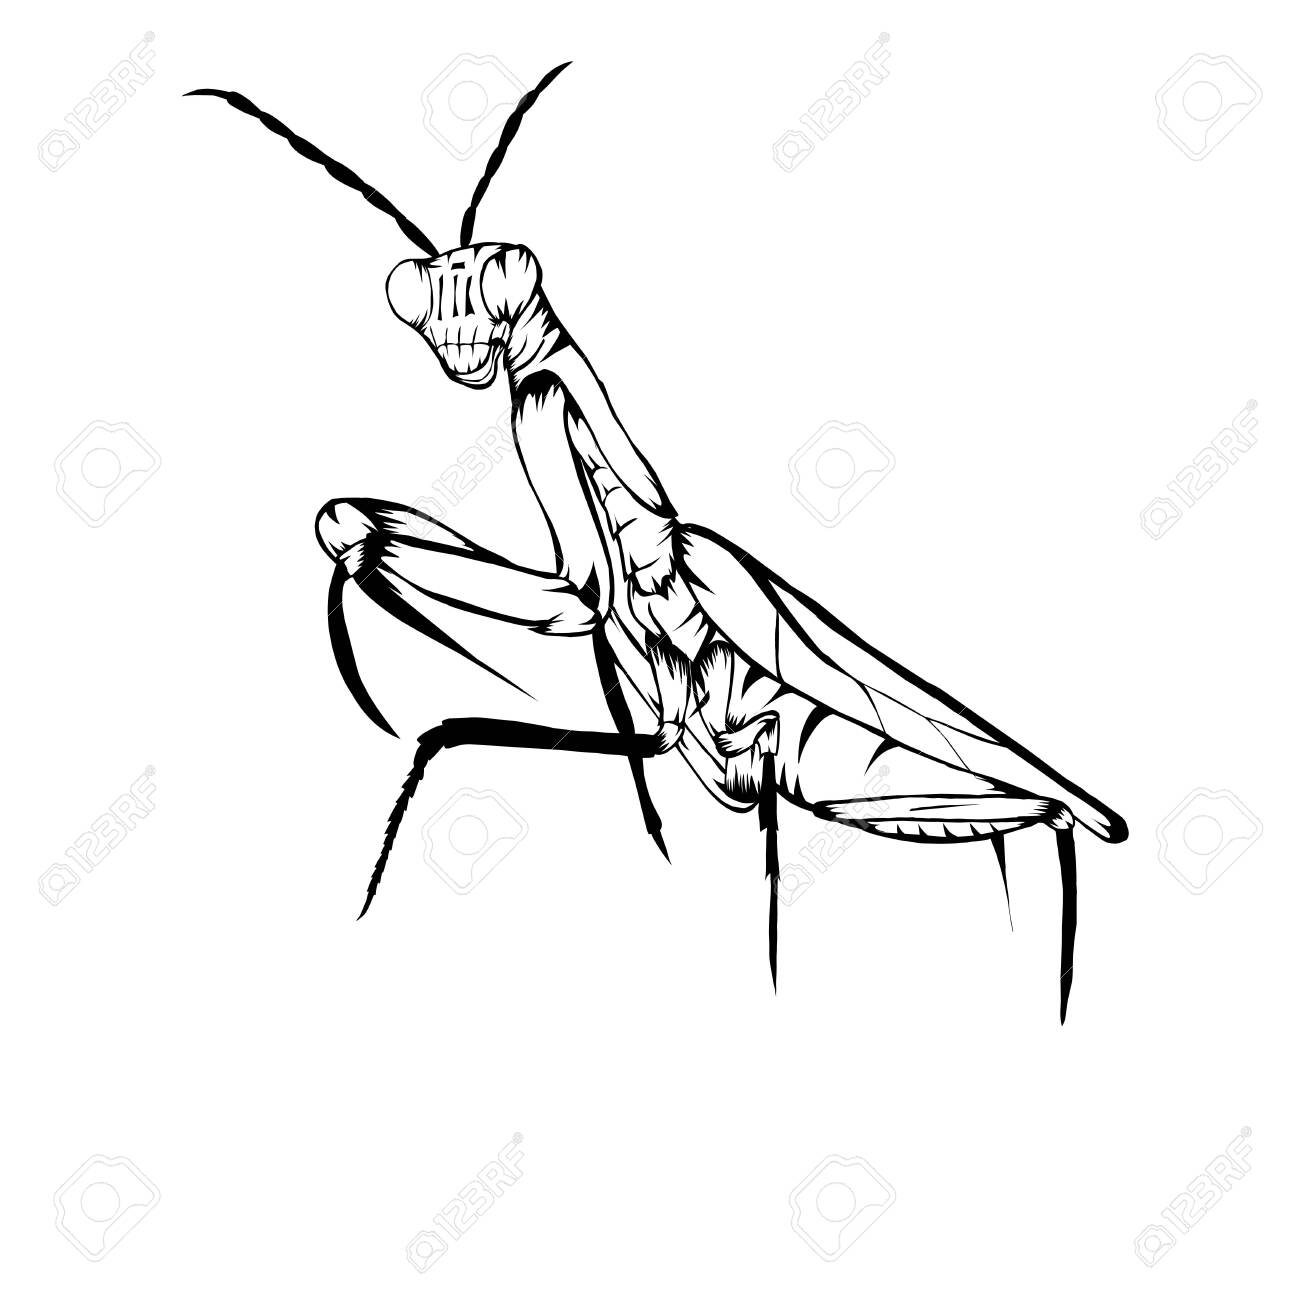 Sketch Design Of Illustration Praying Mantis Royalty Free Cliparts Vectors And Stock Illustration Image 142071706